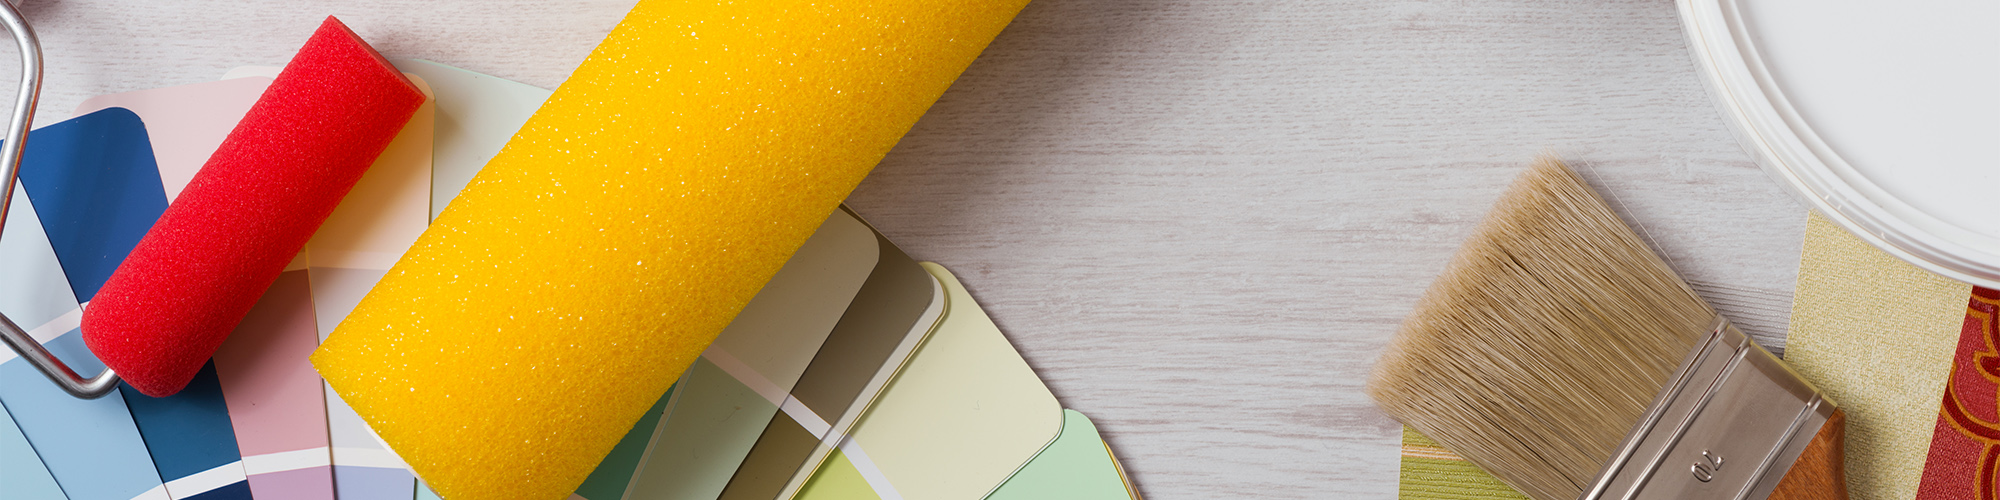 Paint Rollers and Swatches | Kitchen Remodeling in Baltimore, Maryland | KDL Enterprises, LLC